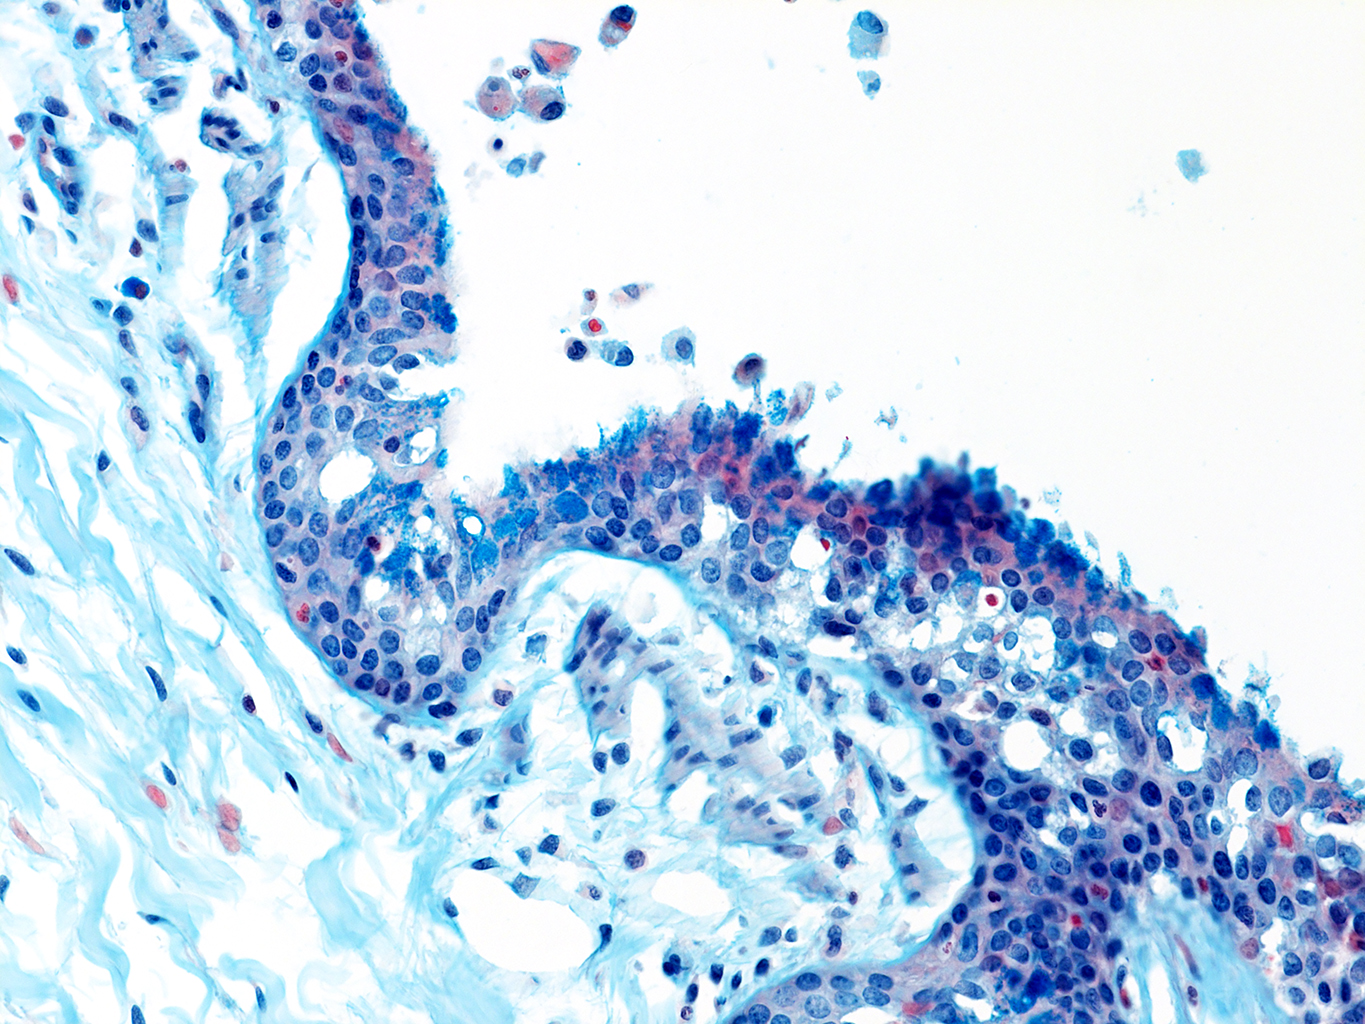 AB Staining of 14 Month-Old Human Lung from Donor D072-RLL-12B2